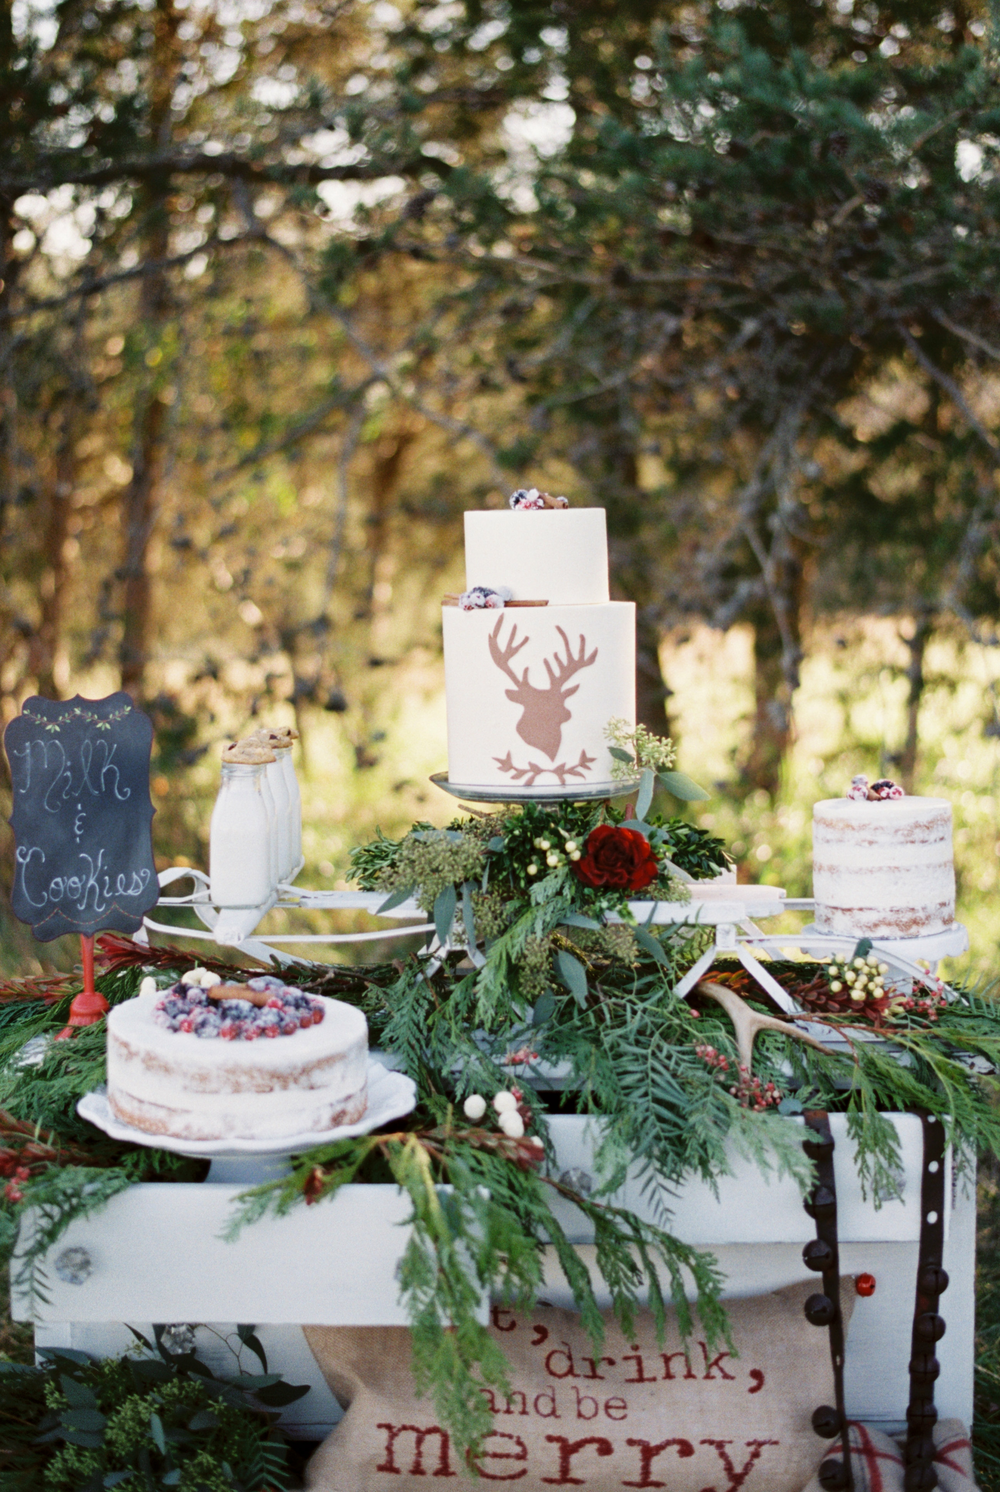 Styled Photo Shoot at Sorella Smith Mountain Lake, VA Photo: Nicole Colwell Photography